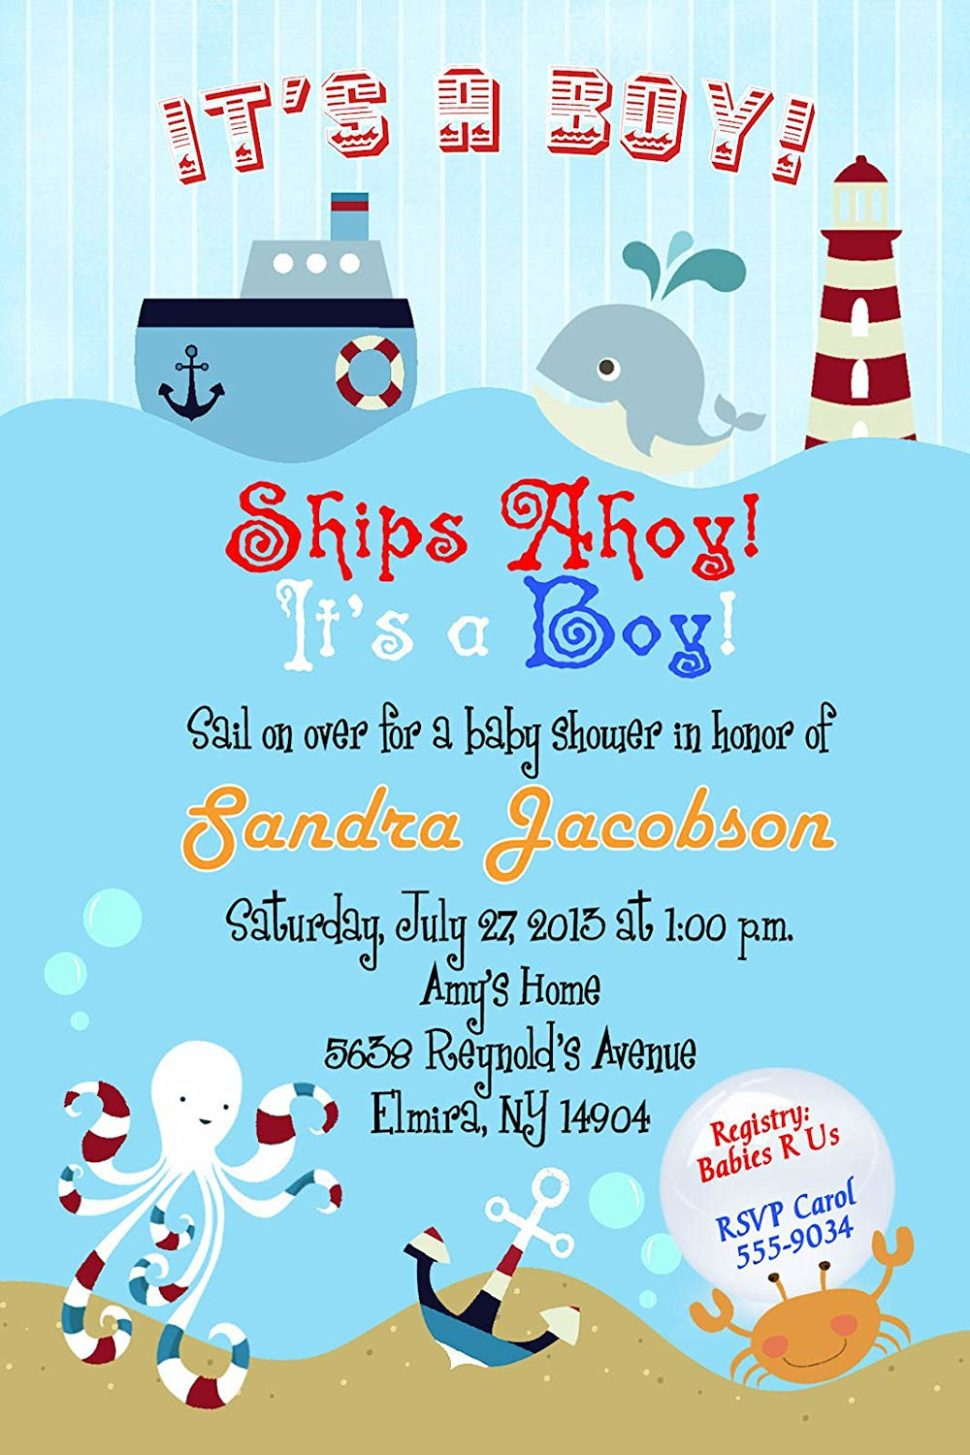 Medium Size of Baby Shower:baby Boy Shower Ideas Free Printable Baby Shower Games Free Baby Shower Ideas Unique Baby Shower Decorations Cheap Invitations Baby Shower Baby Shower Invitations Baby Shower Ideas Baby Shower Decorations Free Baby Shower Ideas